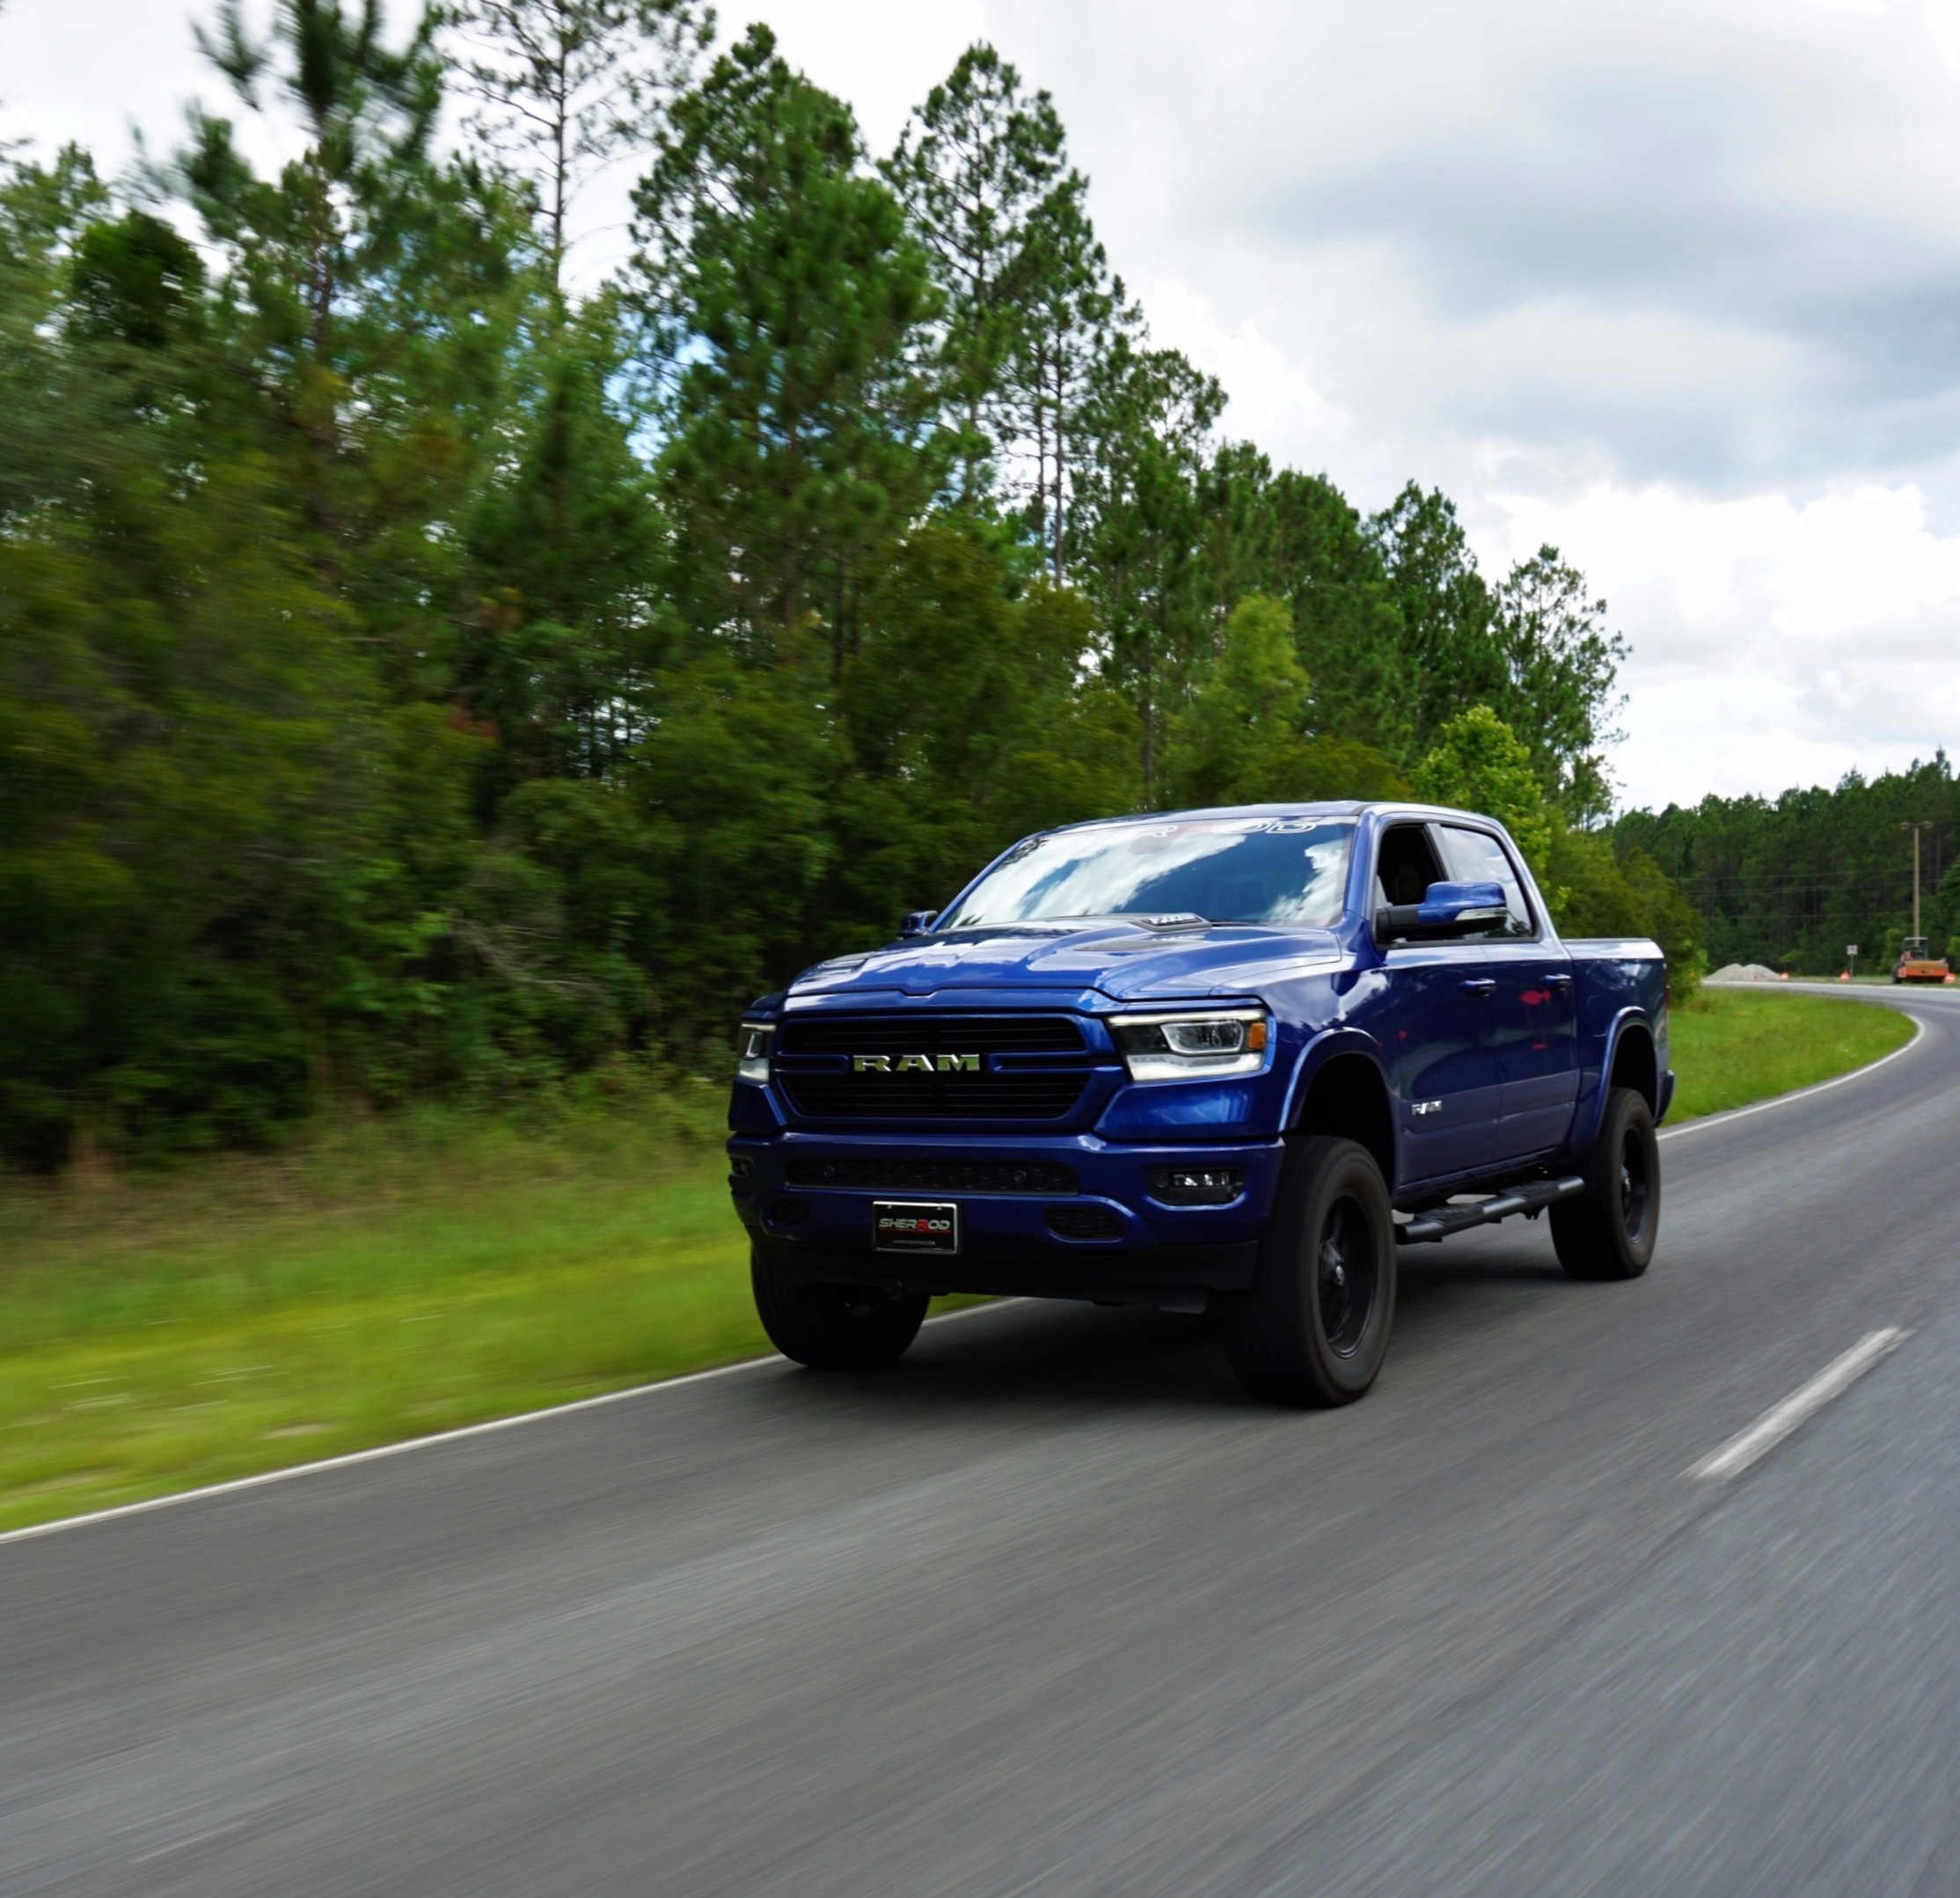 DRIVE SHERROD - Ready to take the next step? You can order a built-to-suit Sherrod Truck todayBecome a partner or locate a Certified Dealership Partner near you.